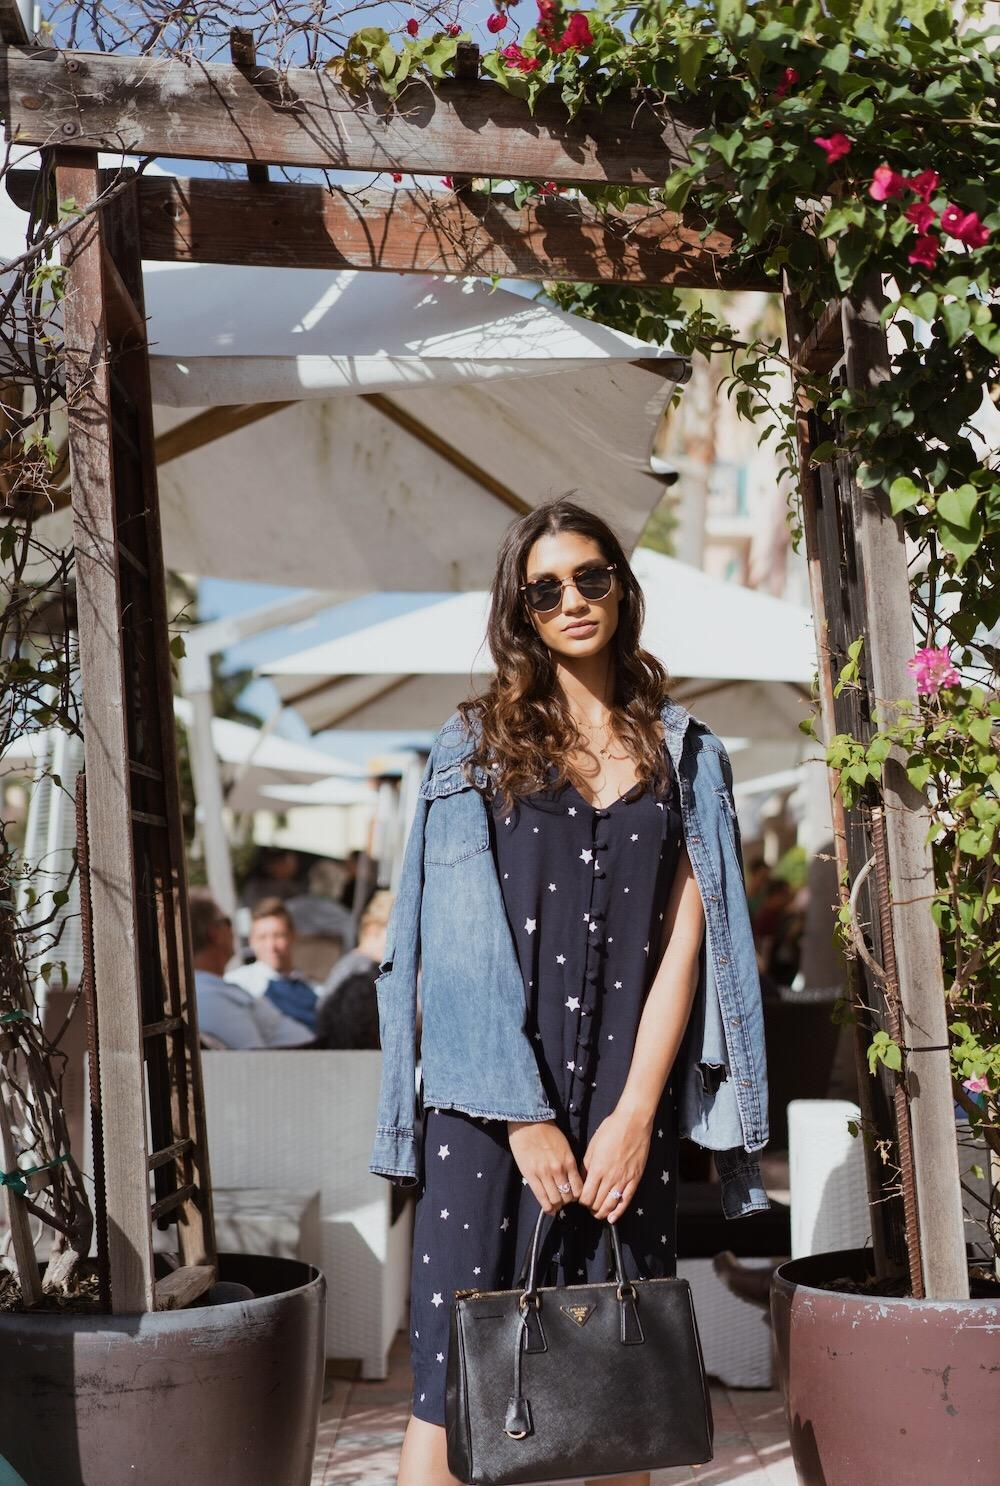 Star Girl: The perfect weekend slip